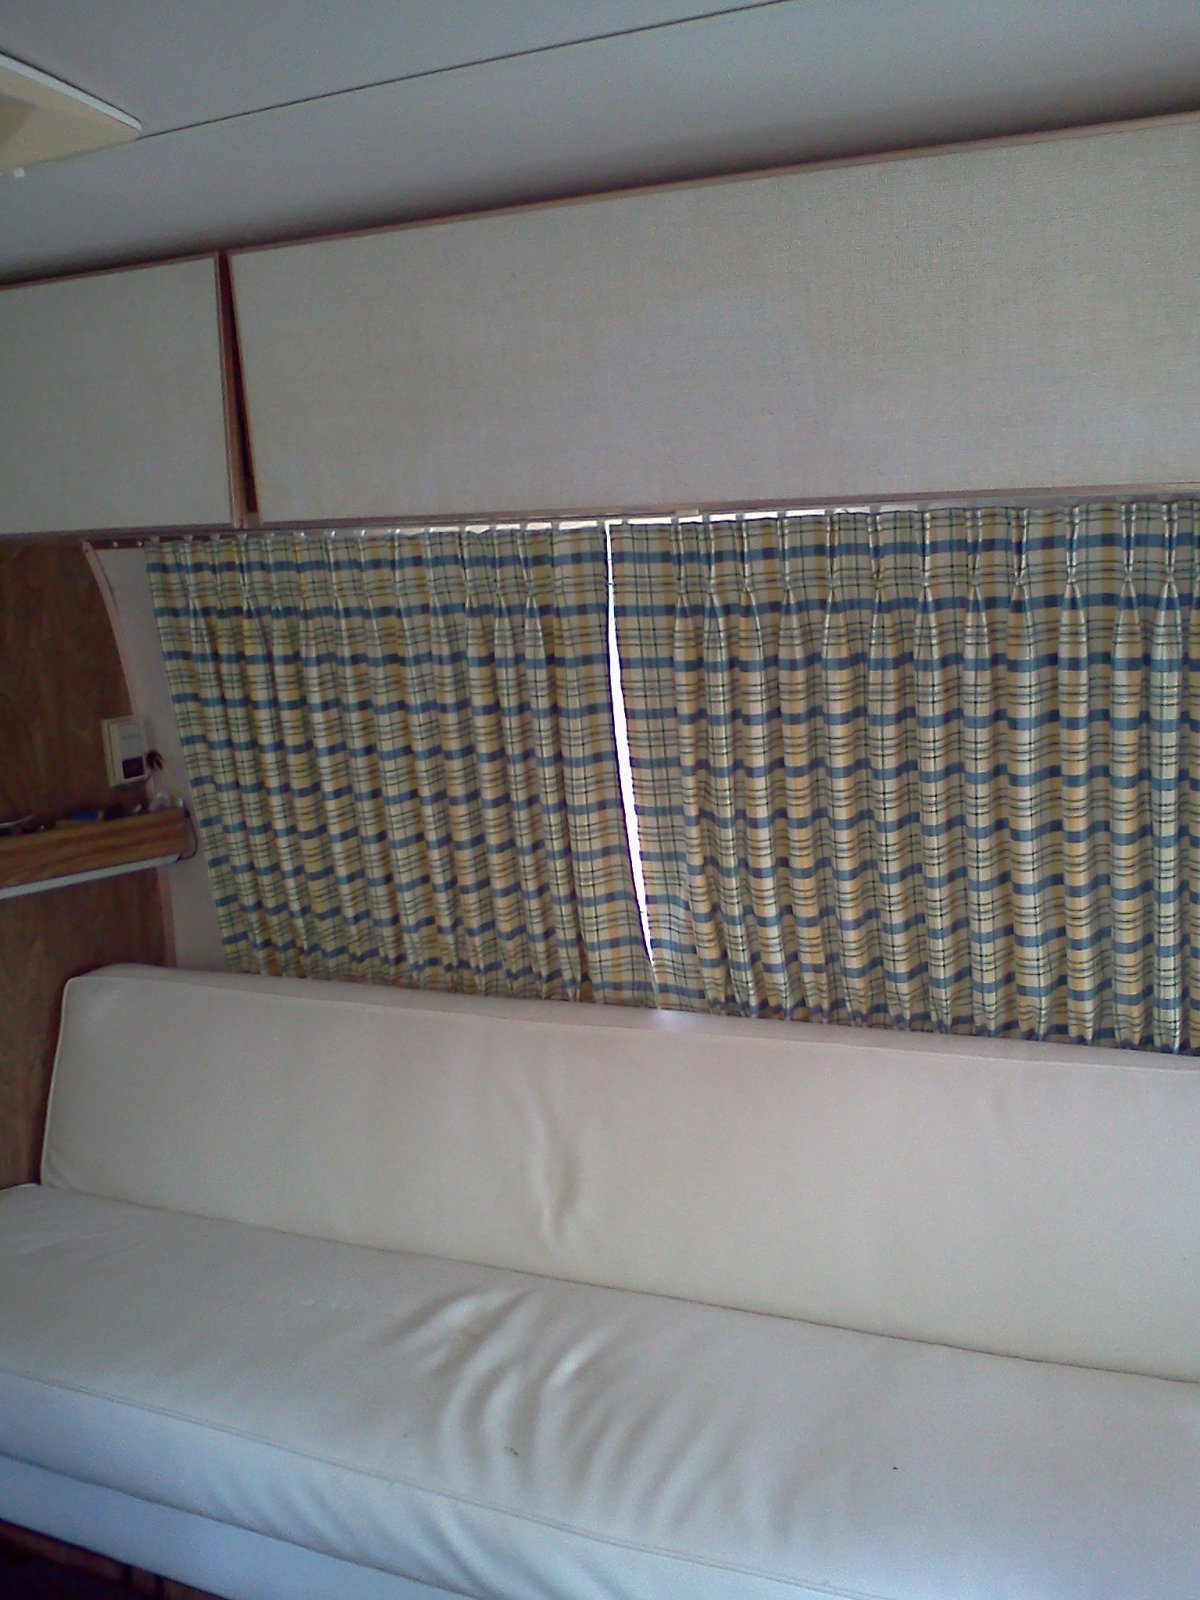 Click image for larger version  Name:Side Curtains Closed.jpg Views:146 Size:274.2 KB ID:137533